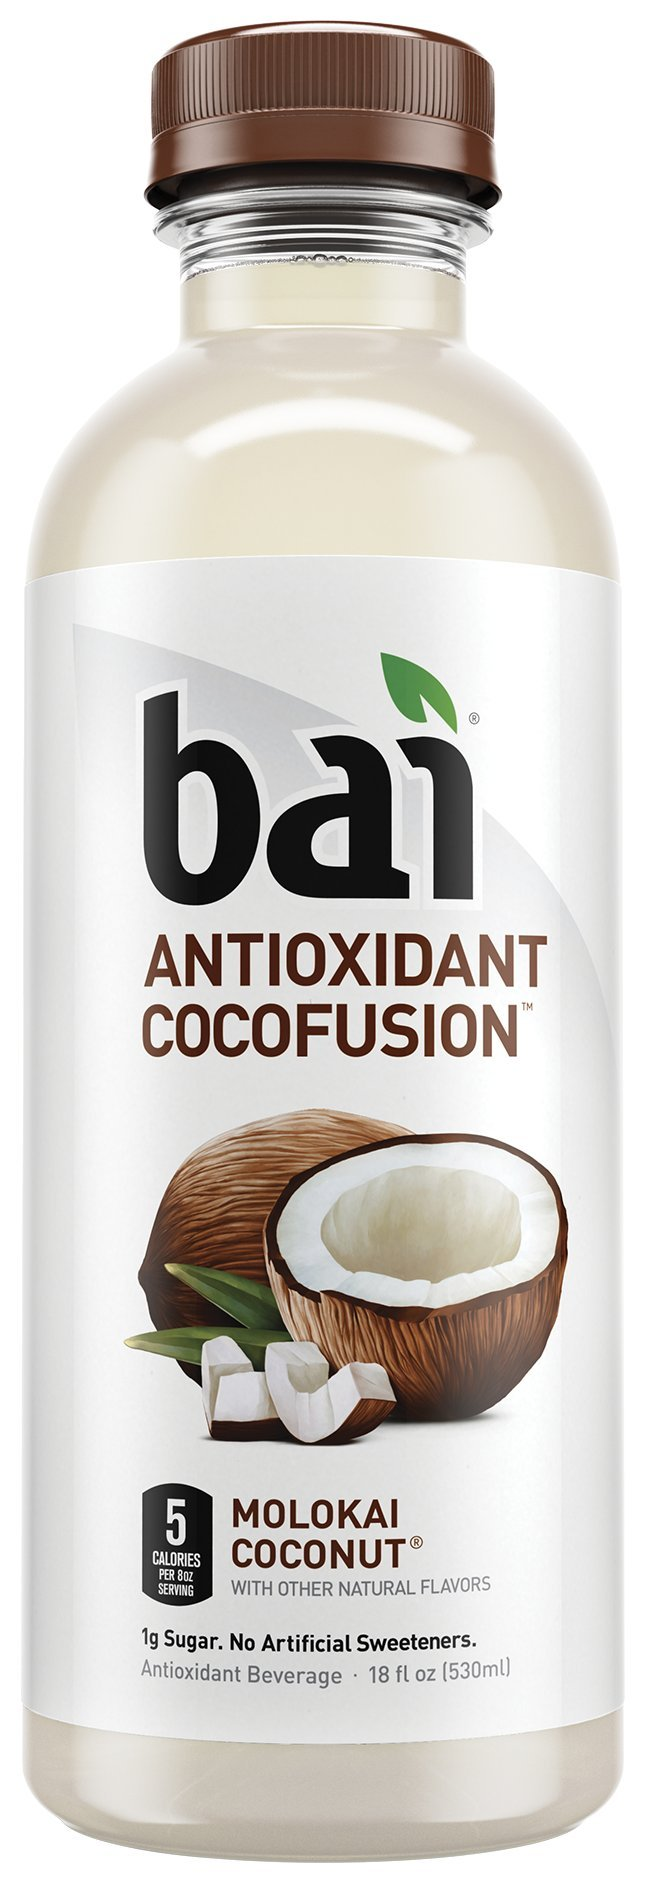 Bai Molokai Coconut, Antioxidant Infused, Coconut Flavored Water Drink, 18 Fluid Ounce Bottles, 12 count